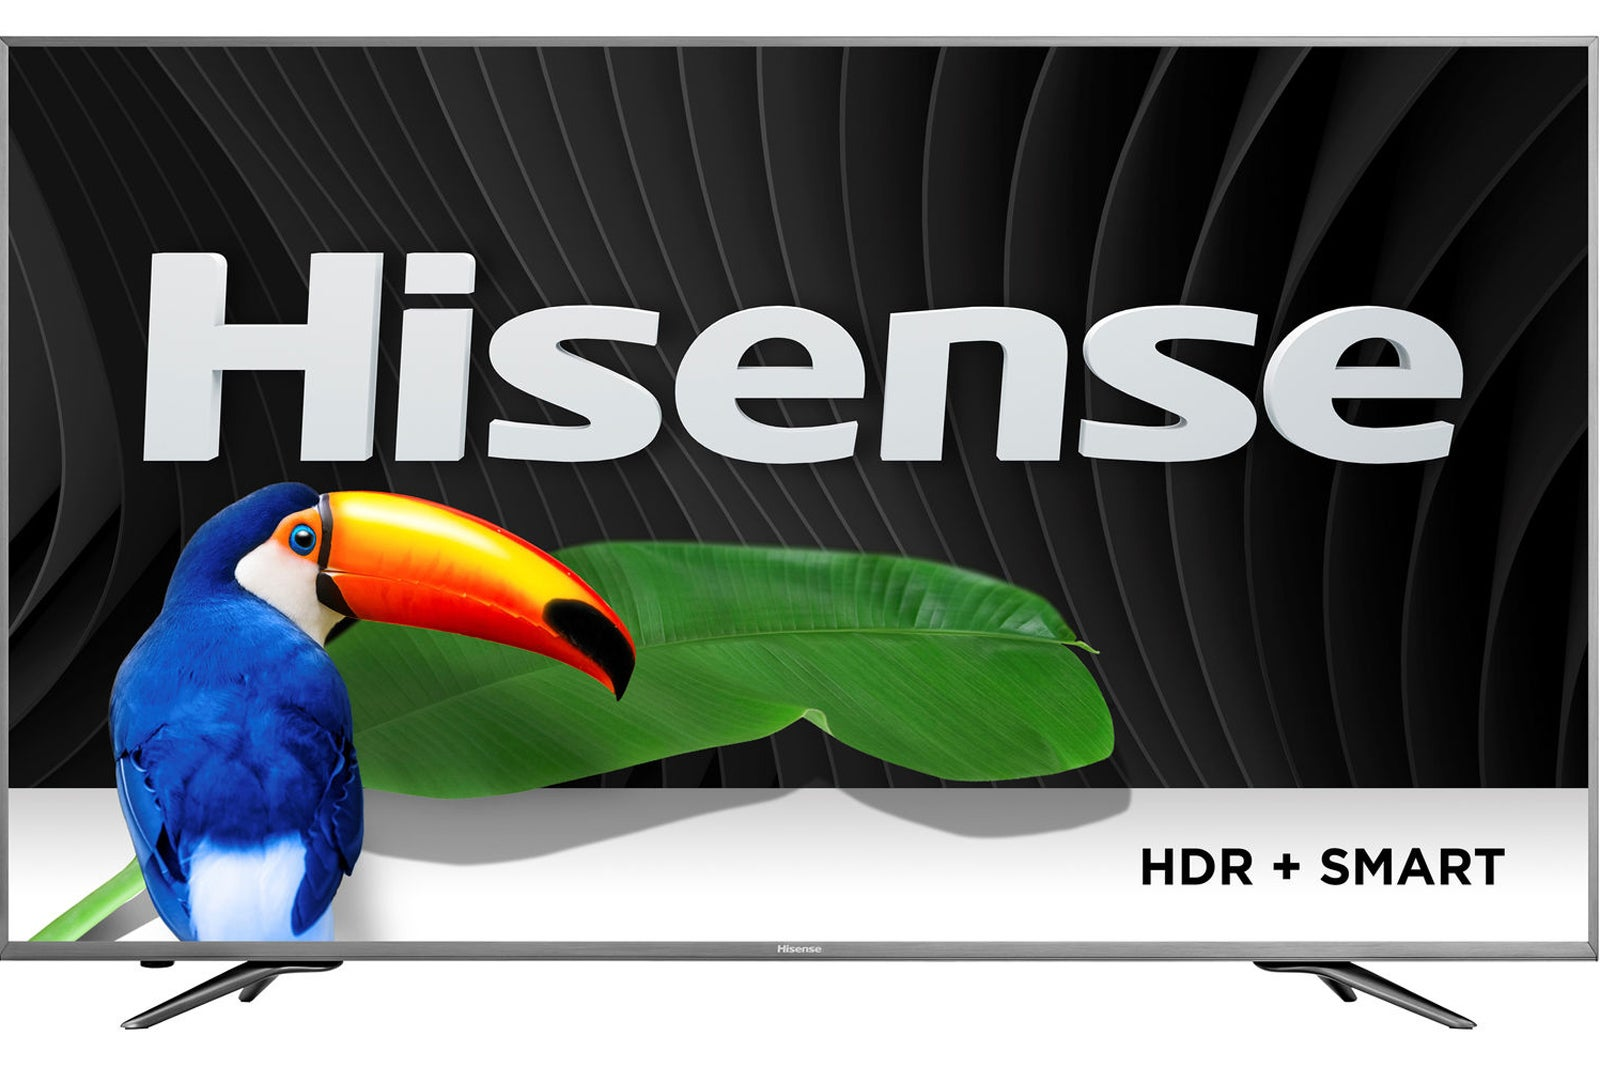 hight resolution of hisense h9d plus smart tv